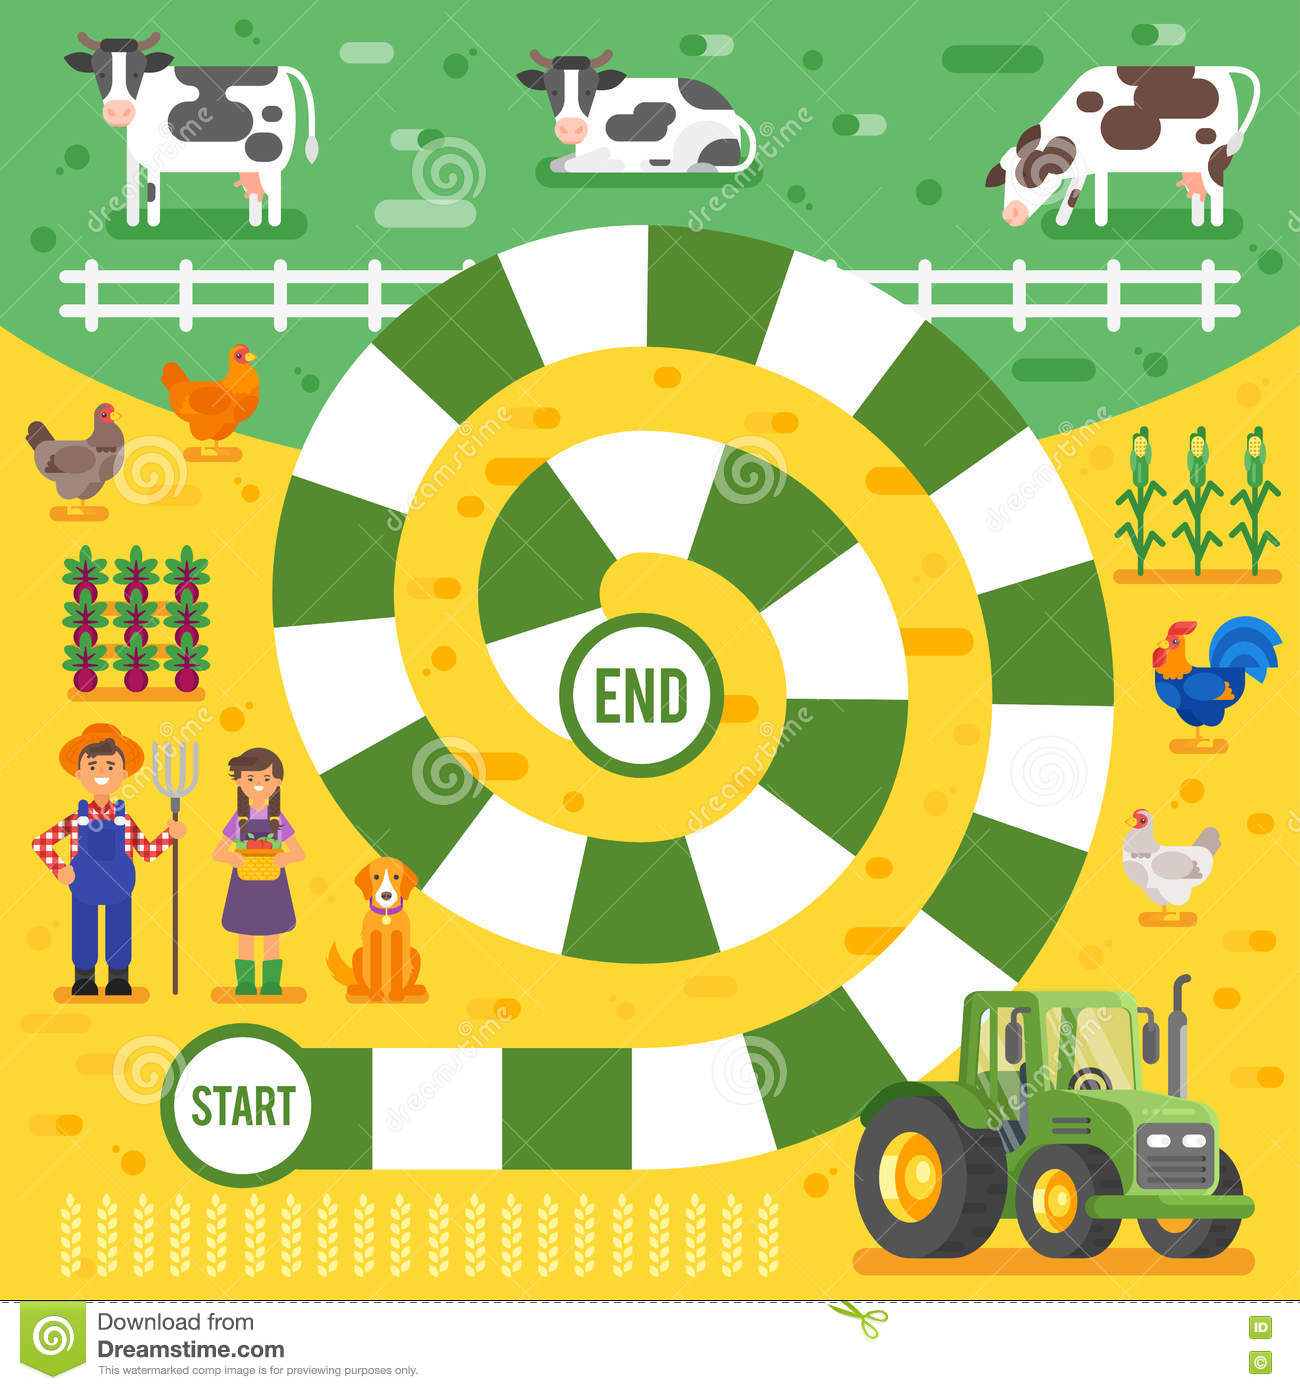 Vector Flat Style Illustration Of Kids Farm Board Game